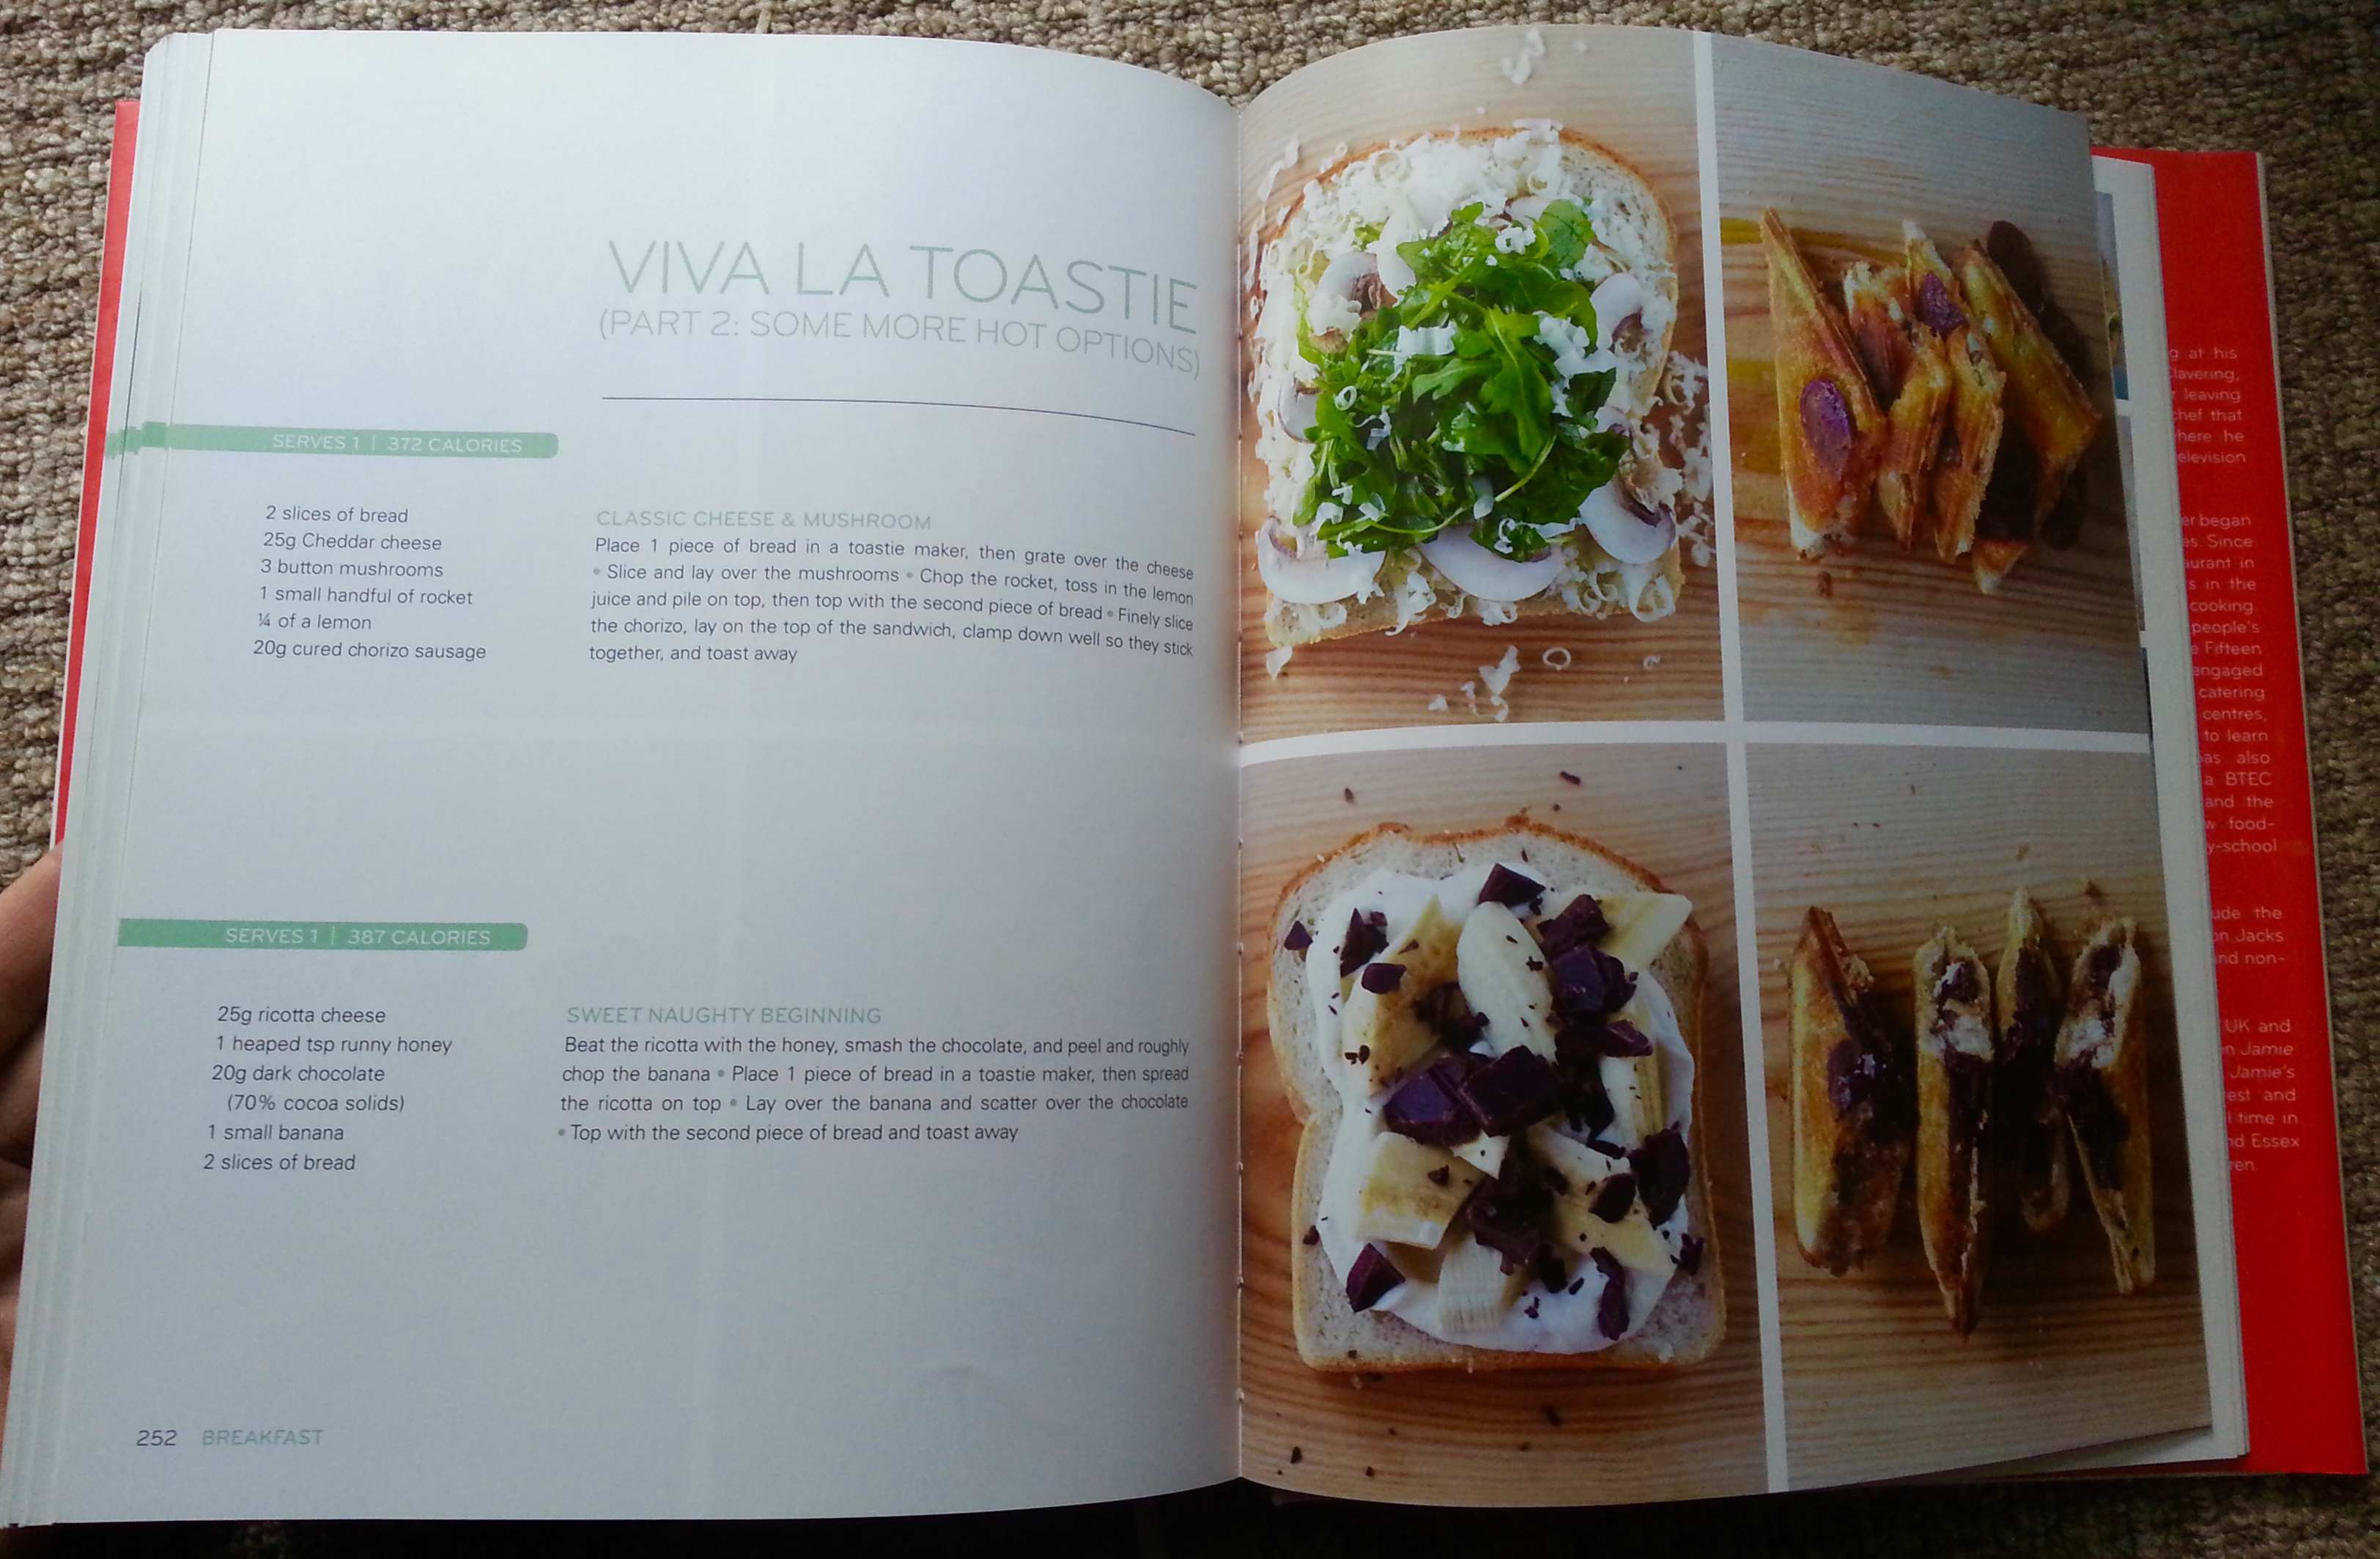 Jamies 15 minute meals book review everywhere jamies 15 minute meals jamie oliver recipe book toasties toasted sandwiches forumfinder Choice Image